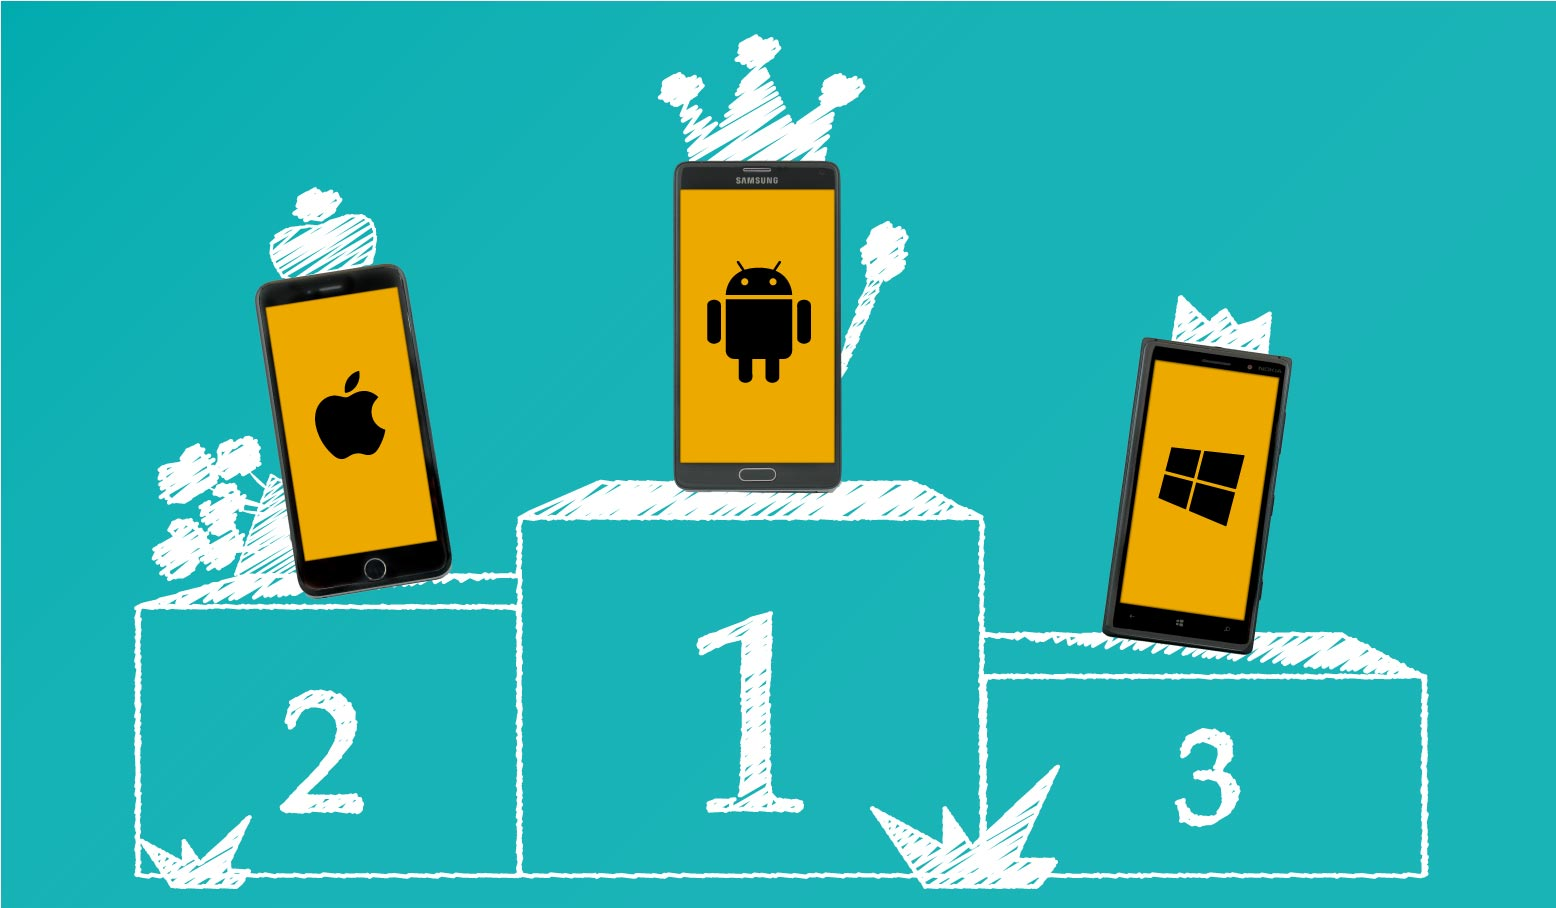 awards podium with Apple, Android and Microsoft phones